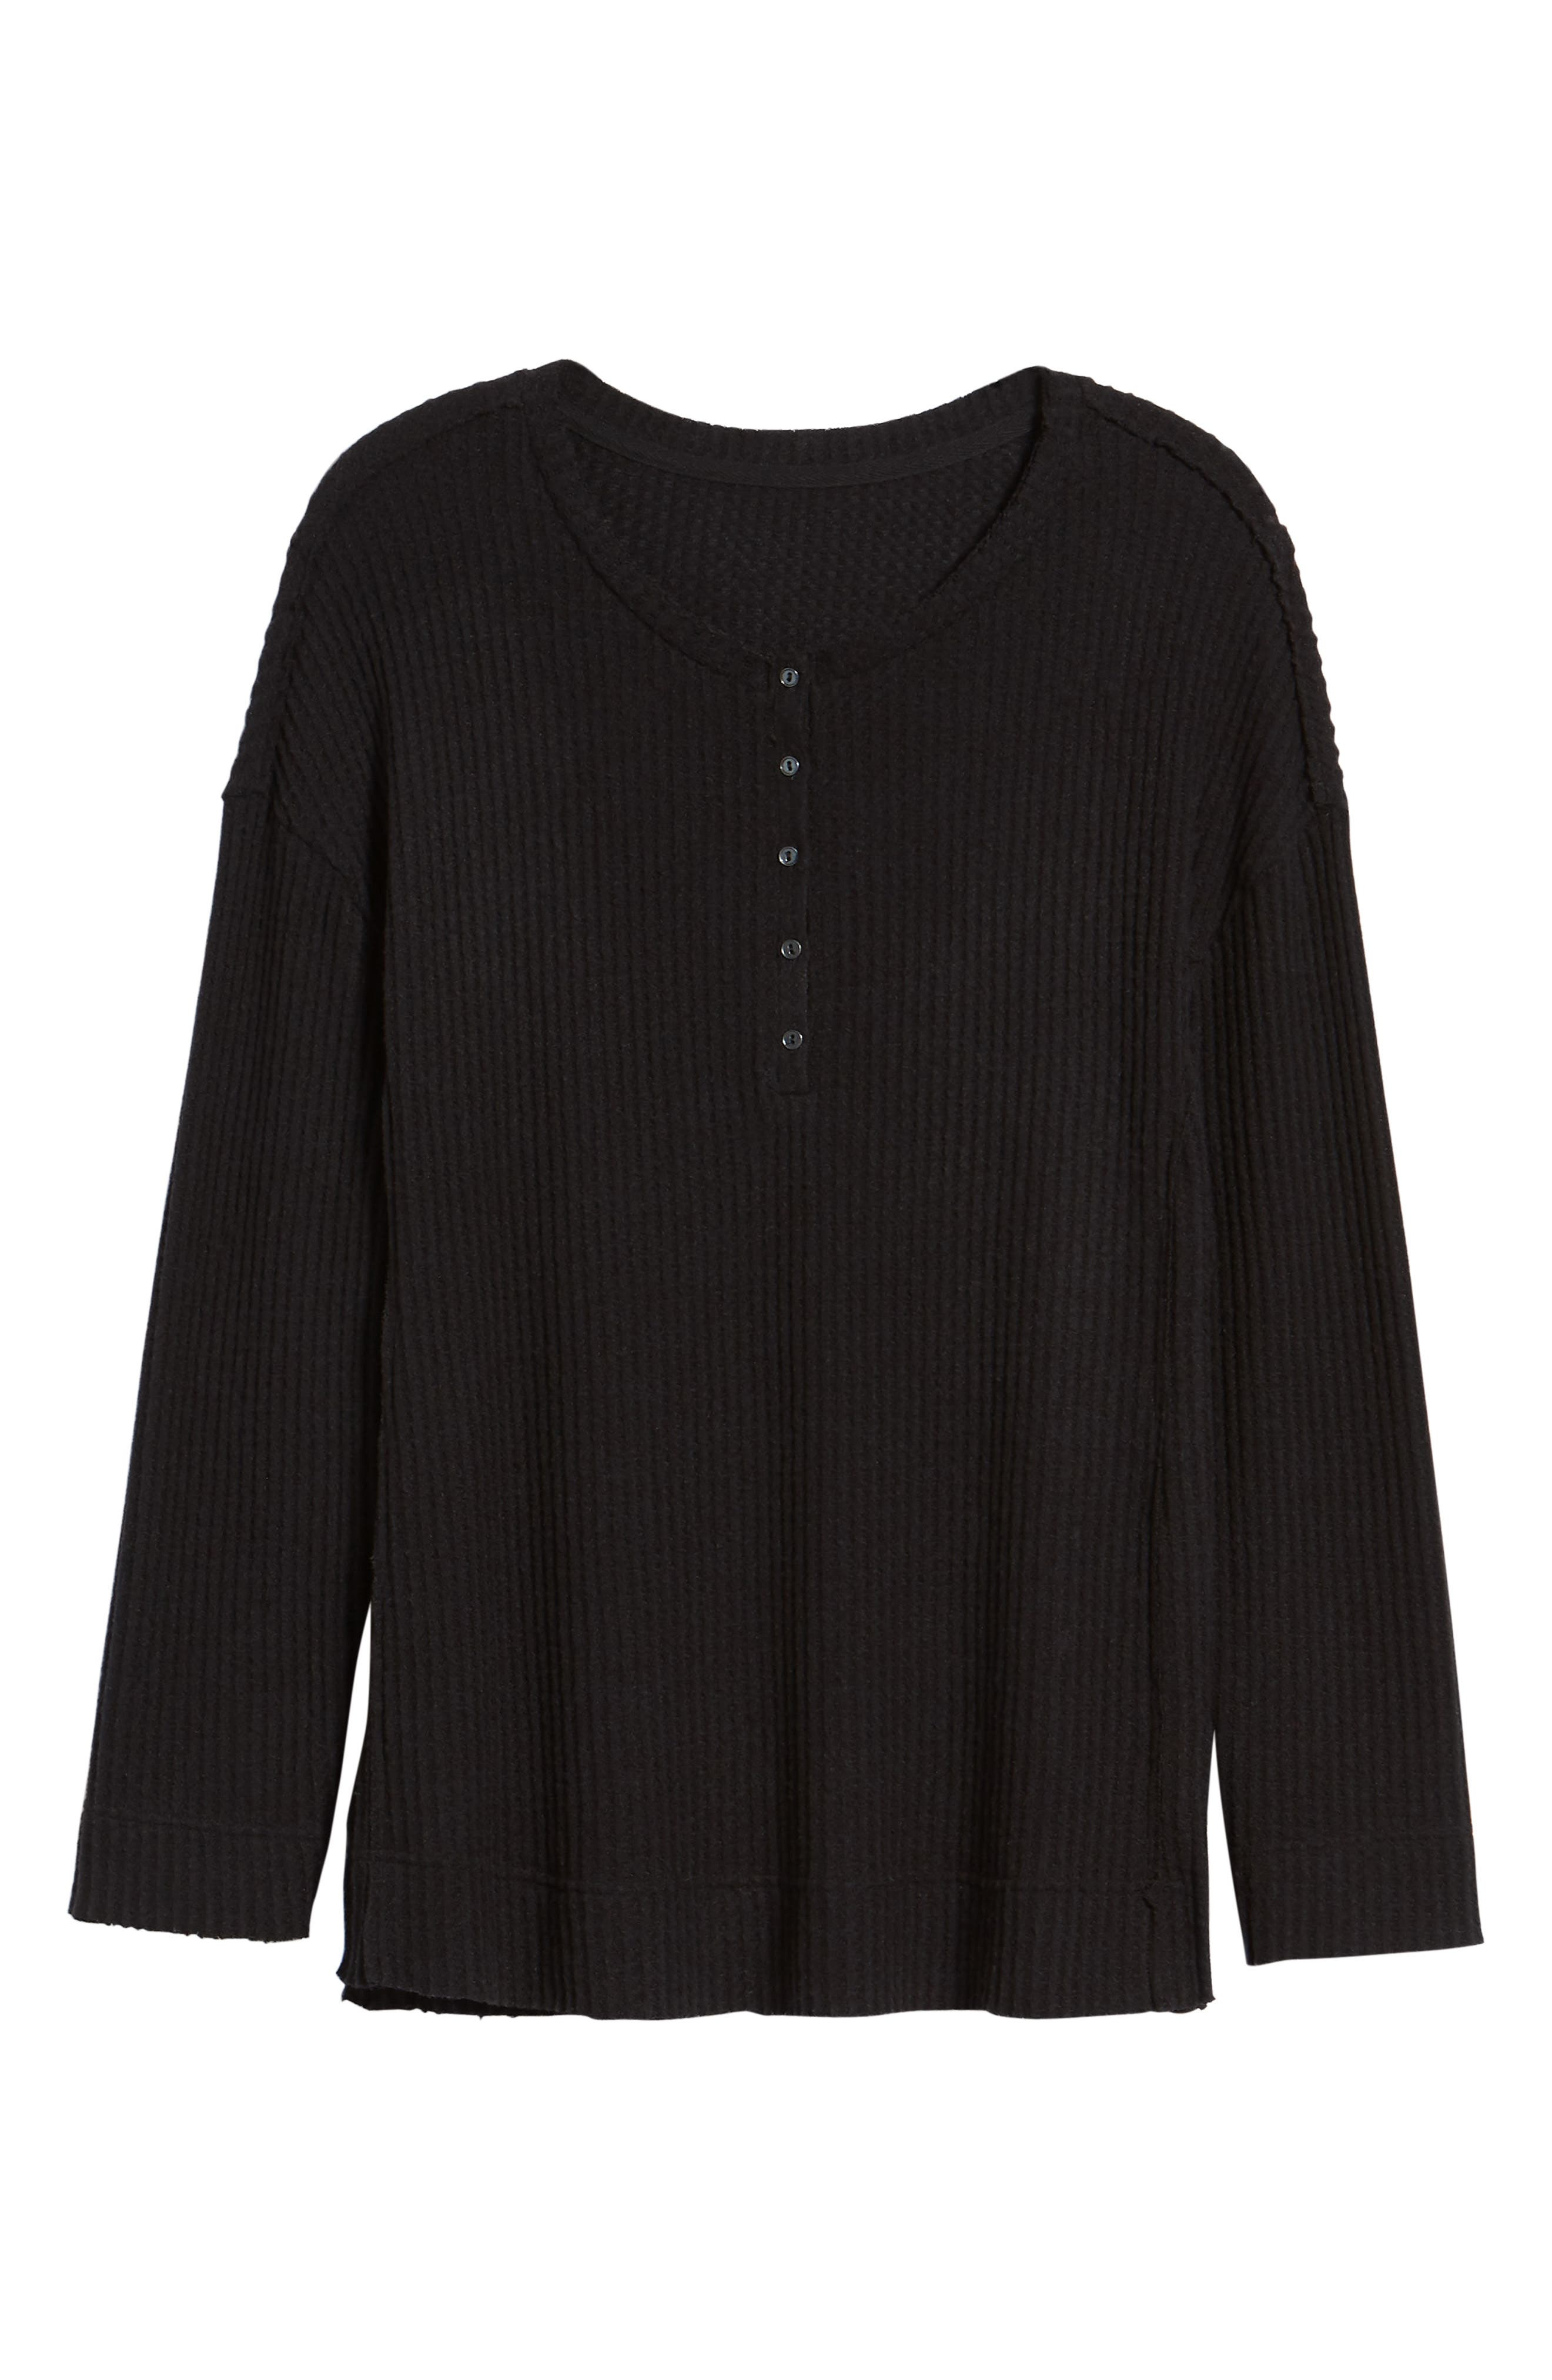 Thermal Henley Top,                             Alternate thumbnail 6, color,                             001